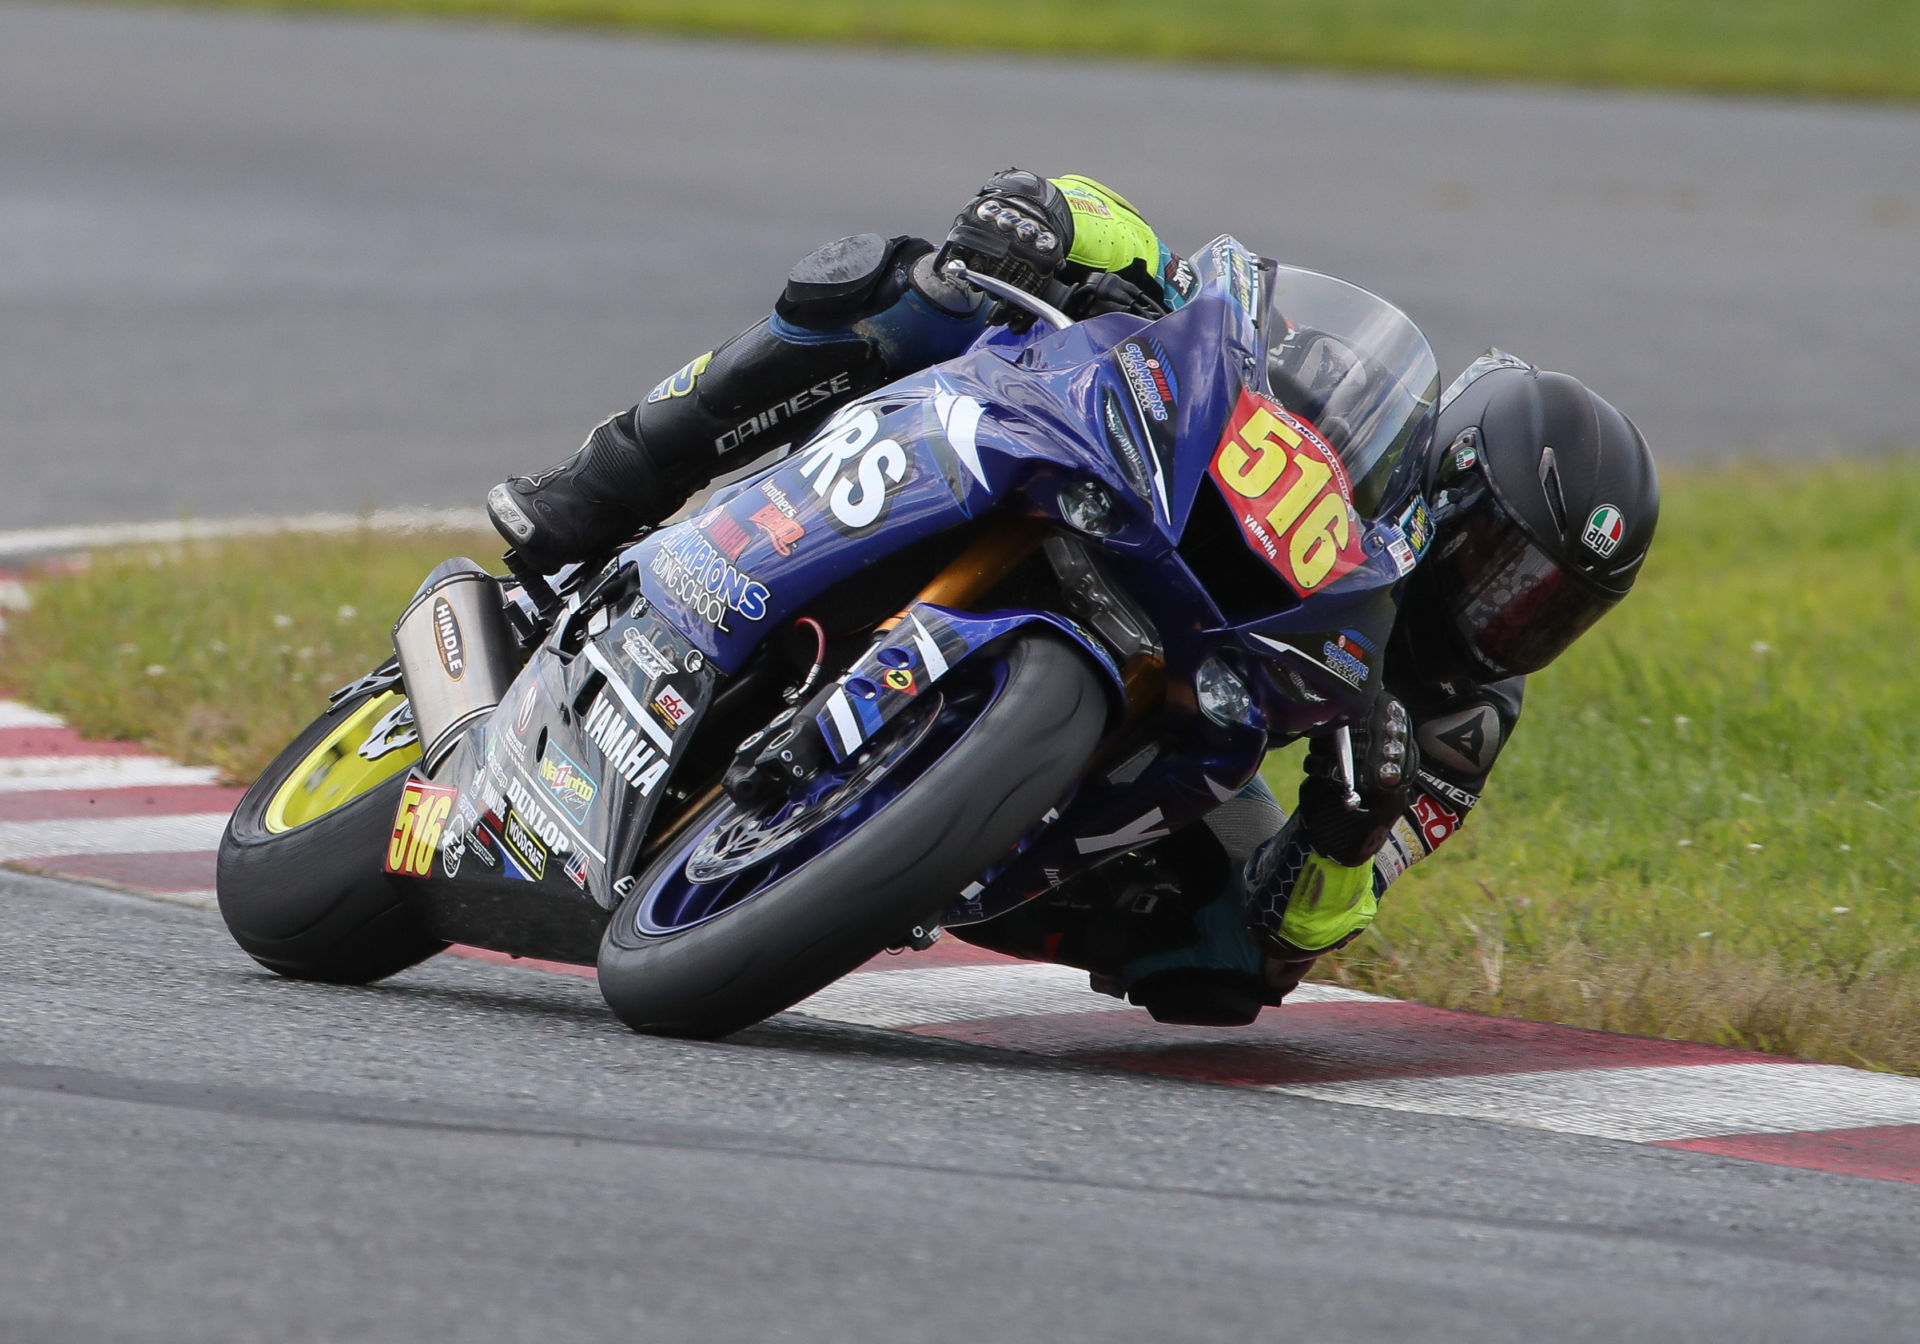 Anthony Mazziotto III (516) in action at NJMP in 2017. Photo by Brian J. Nelson.